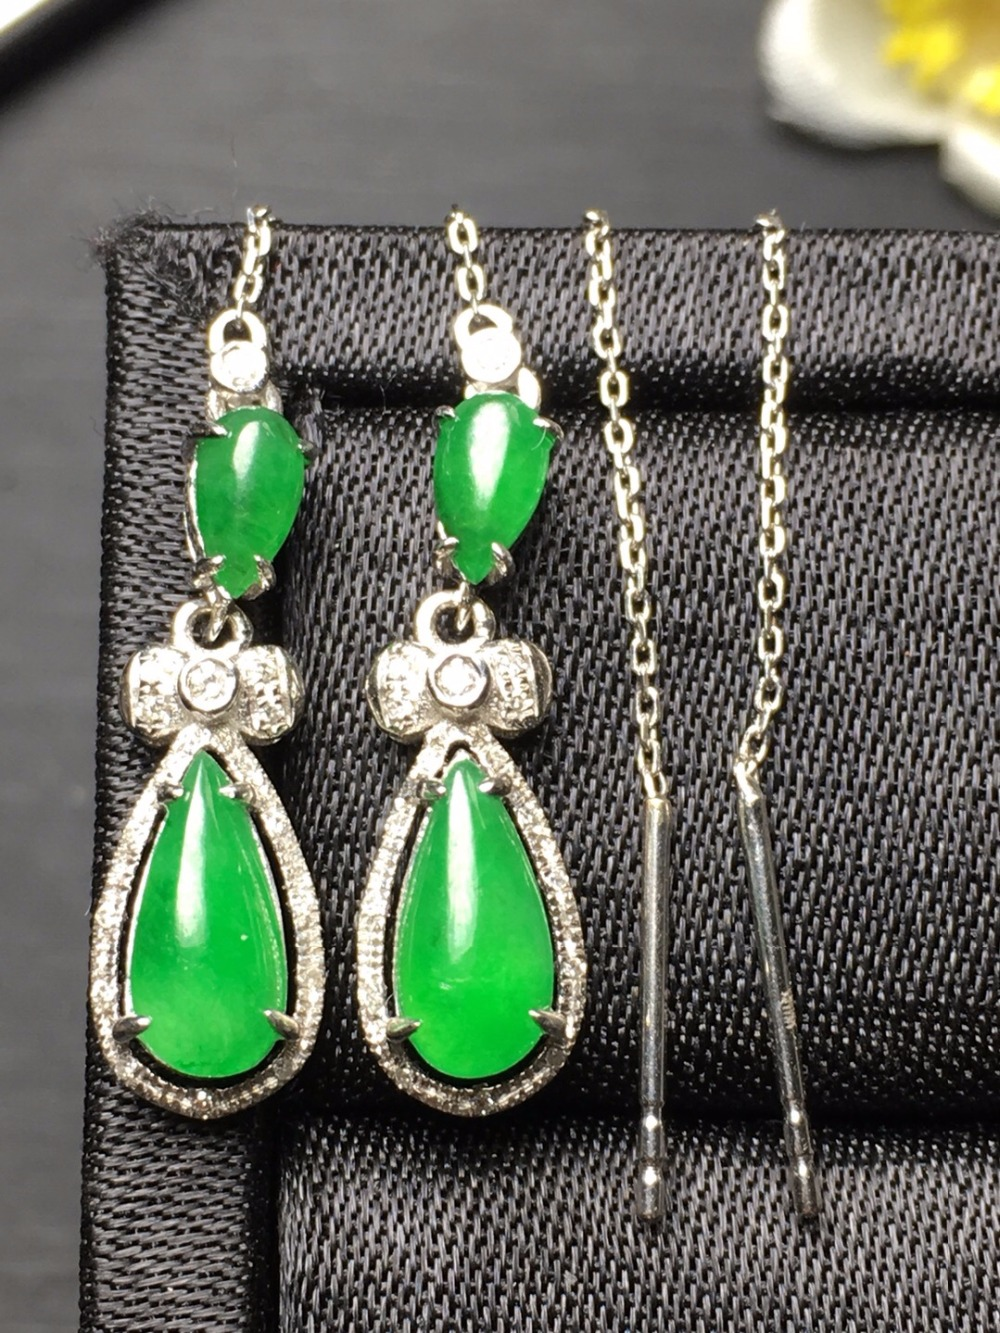 Fine Jewelry Collection Real 18K White Gold AU750 100% Natural Green Jade Gemstone Myanmer Origin Drop Earrings for Women fine jewelry collection real 18k white gold natural green jade gemstone animal shape pendant necklace fine pendants